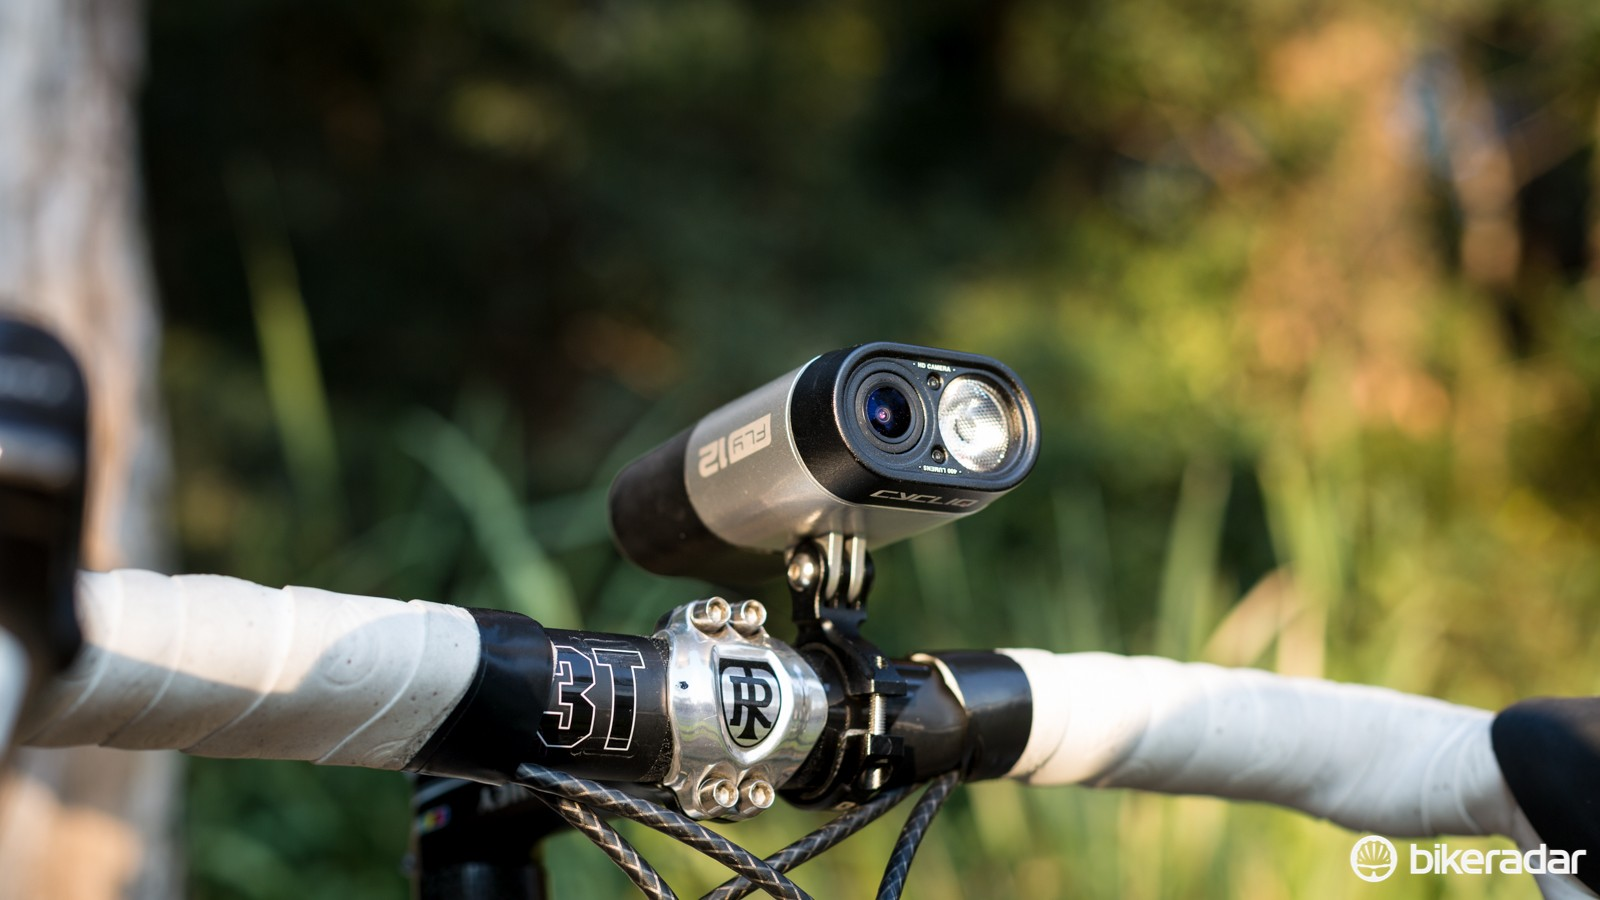 The Fly12 combines a 400 lumen front light with a full HD 1080p camera into a single unit